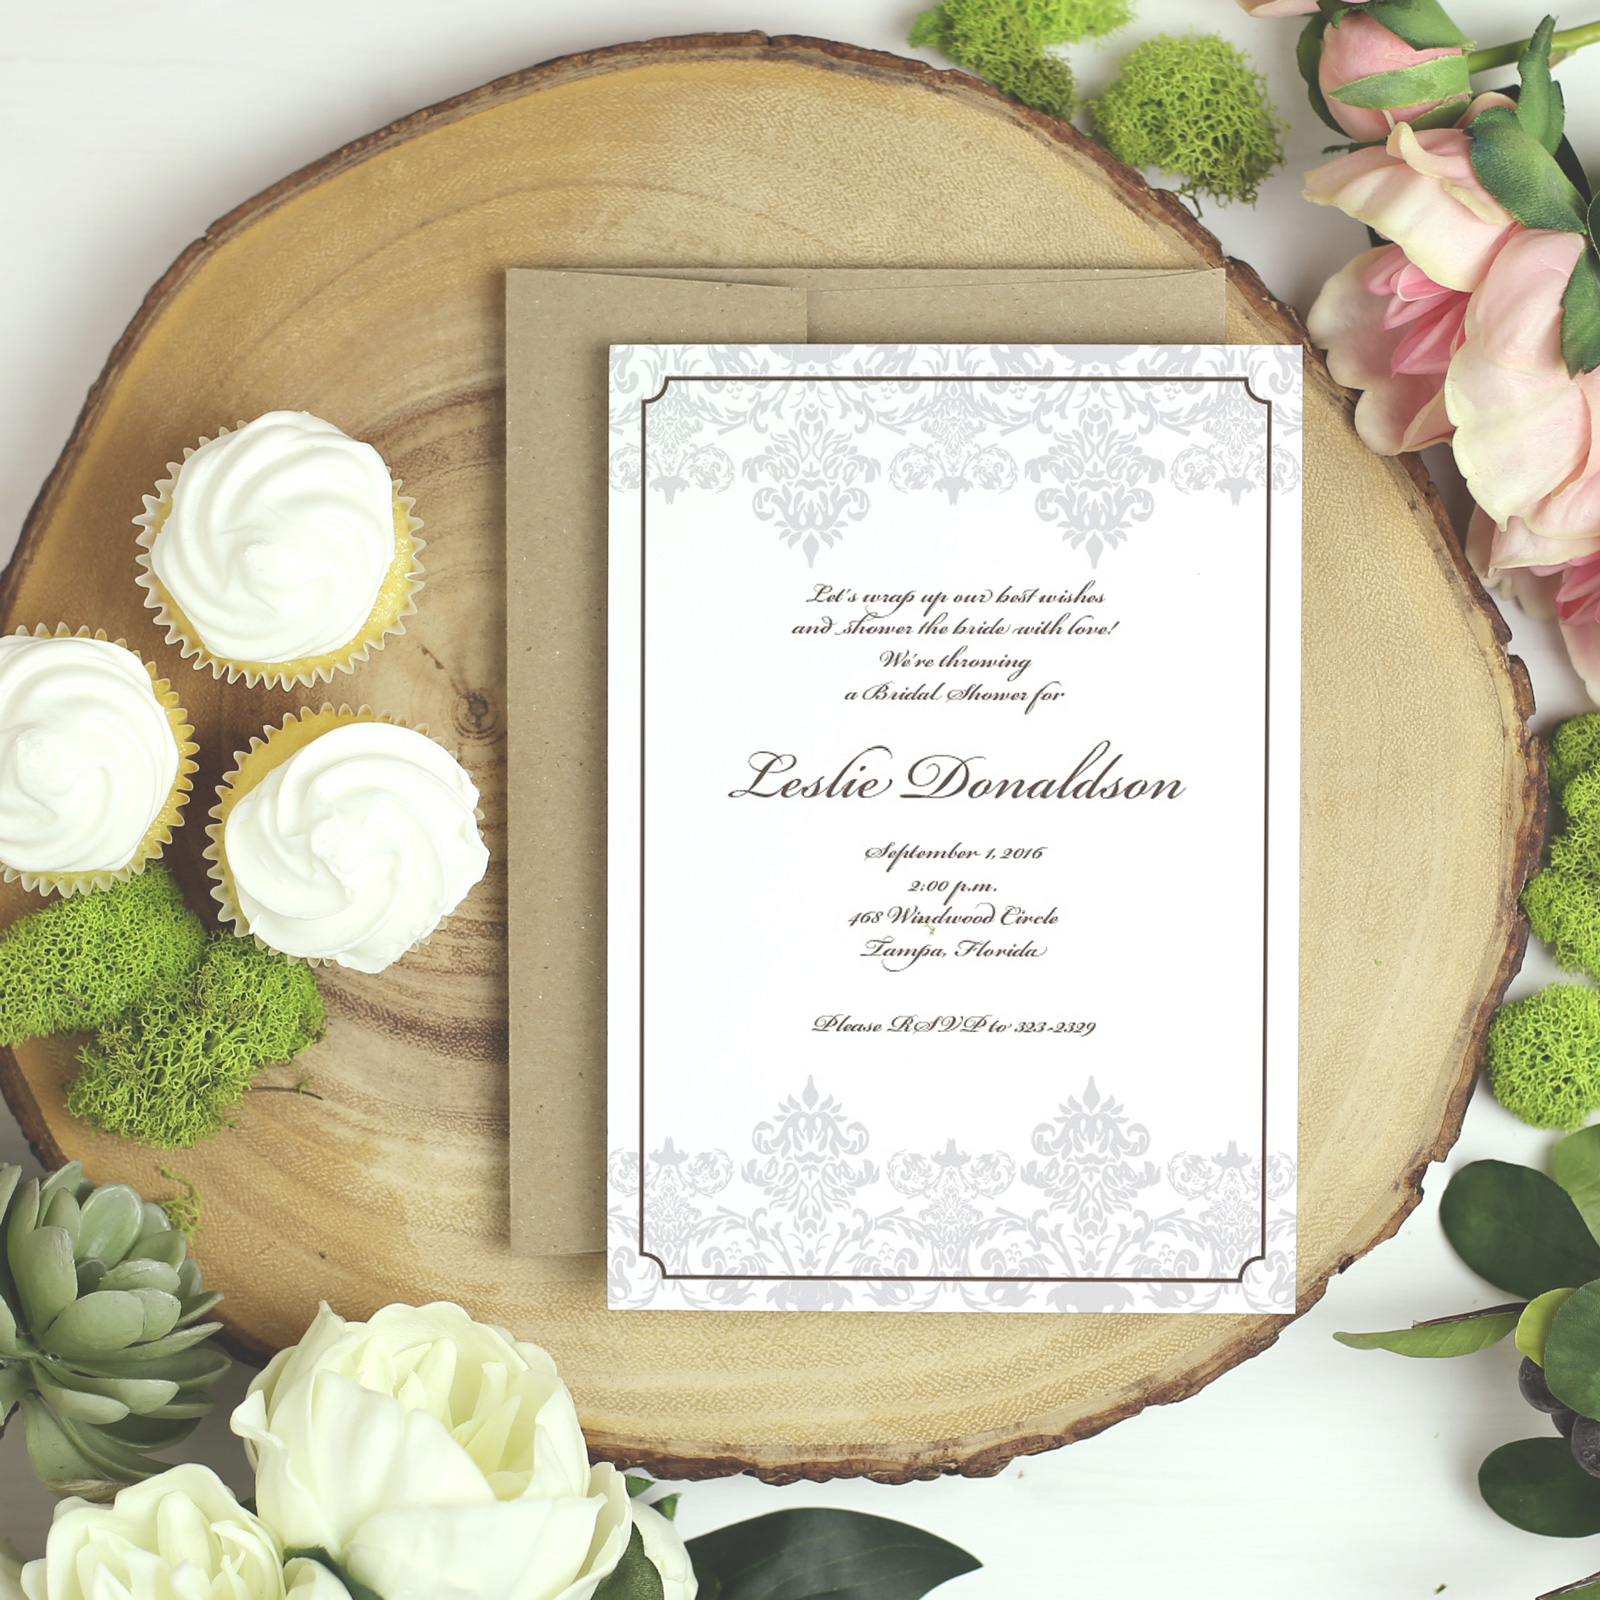 Most Stylish Wedding Invitation Cards To Buy- Best Designs